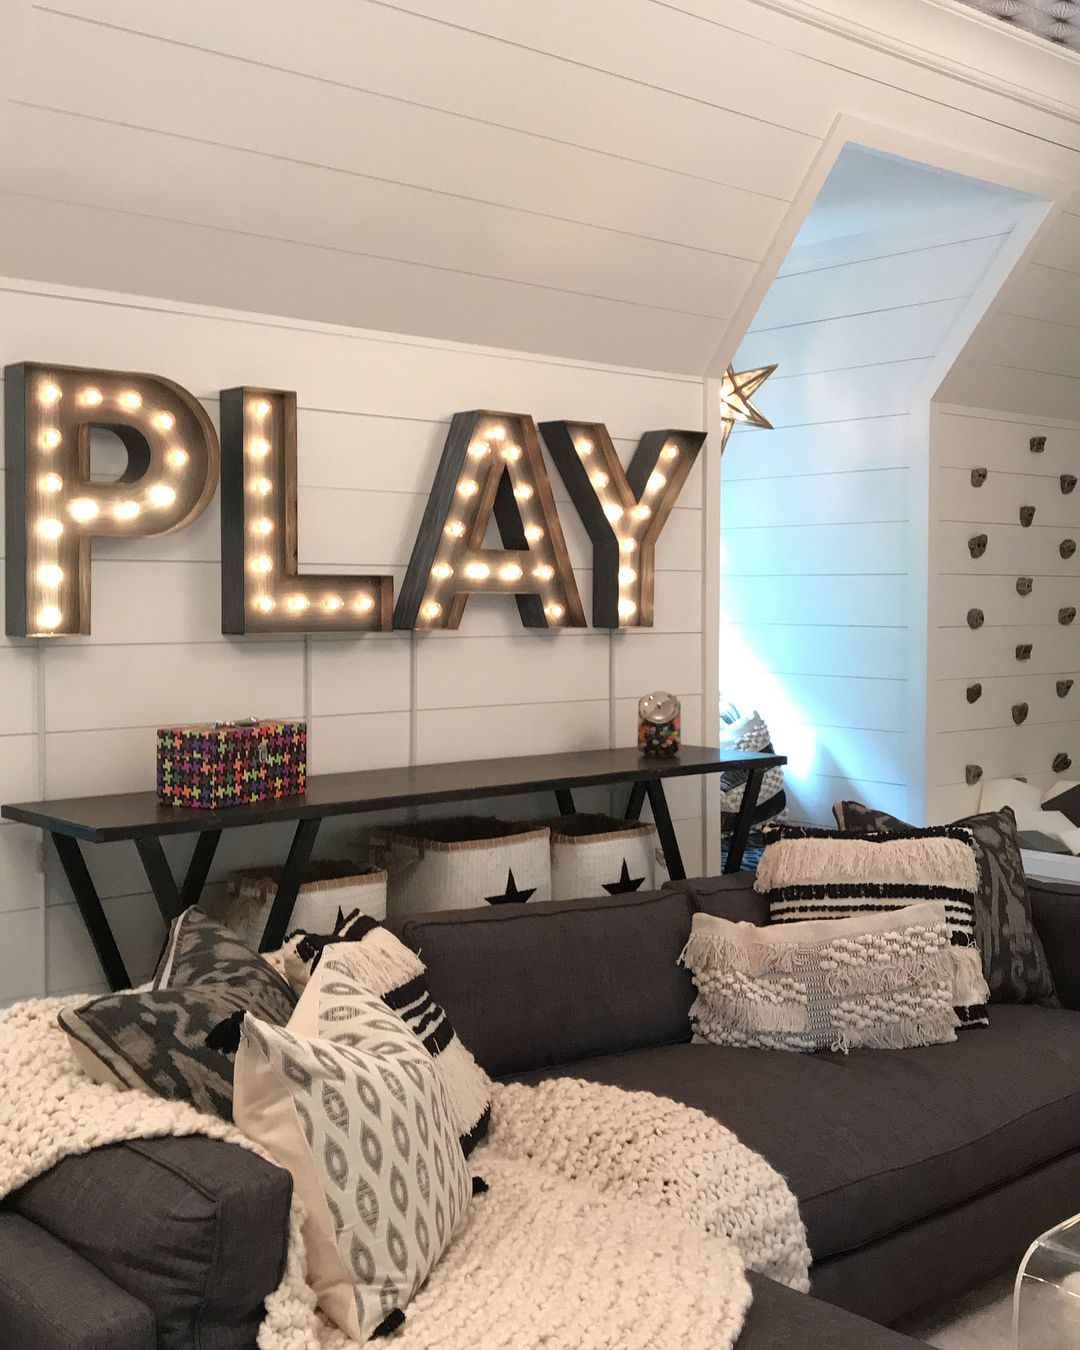 """LINEN & FLAX CO. on Instagram: """"Take a look at our recent project…Playroom Dreams! Every inch of this space is filled with form, function and whimsy! The black and white…"""""""